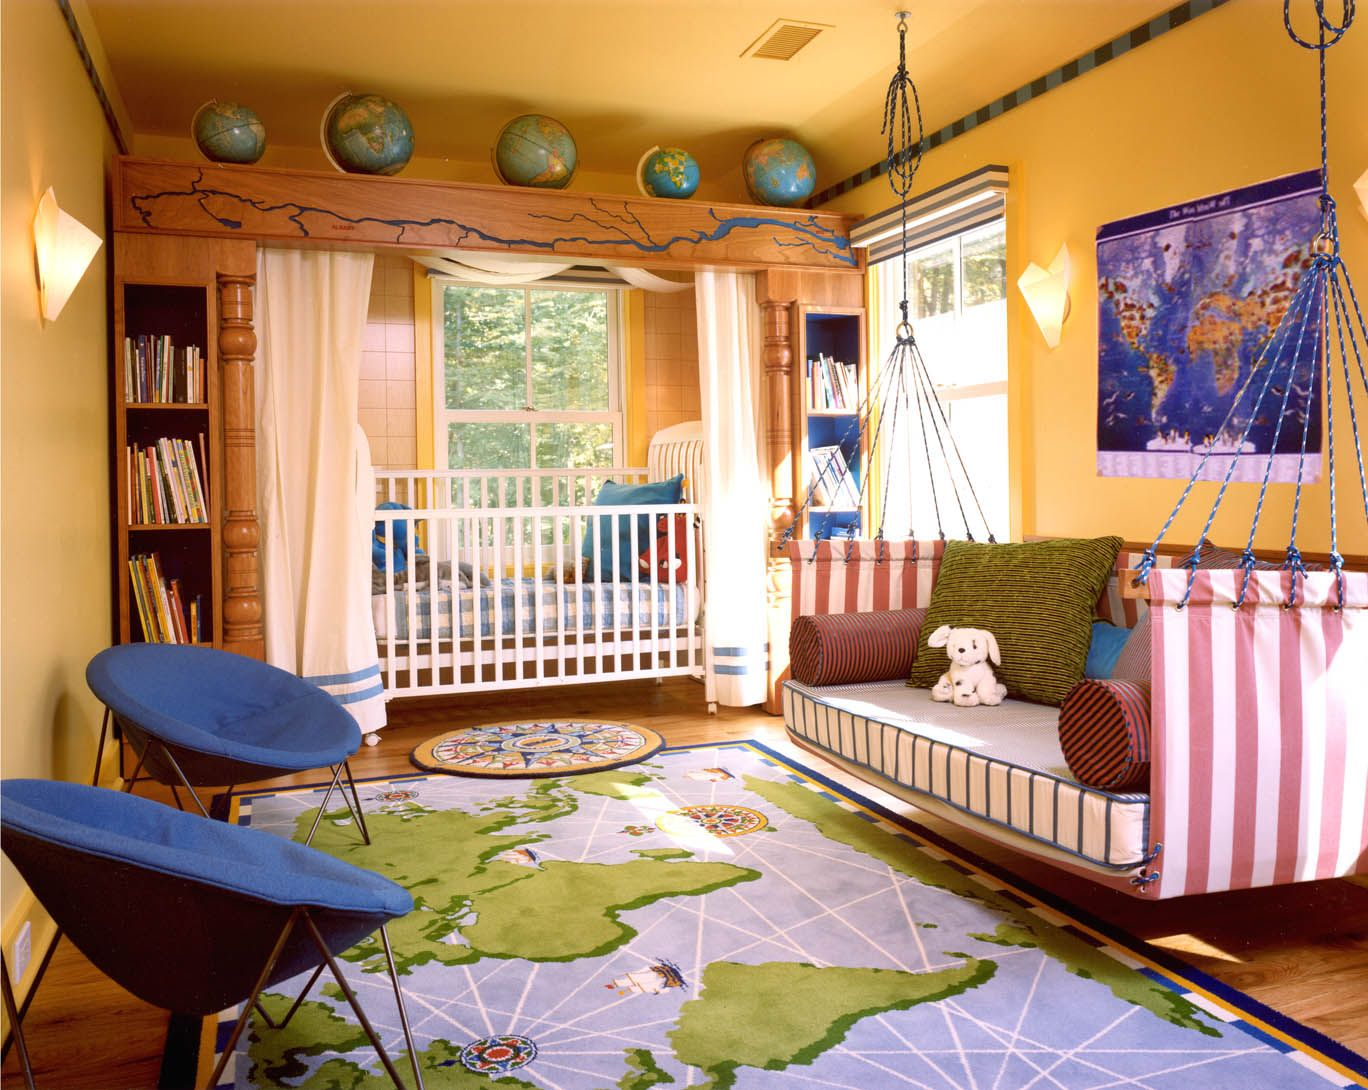 15 nice kids room decor ideas with example pics | boys, kids rooms